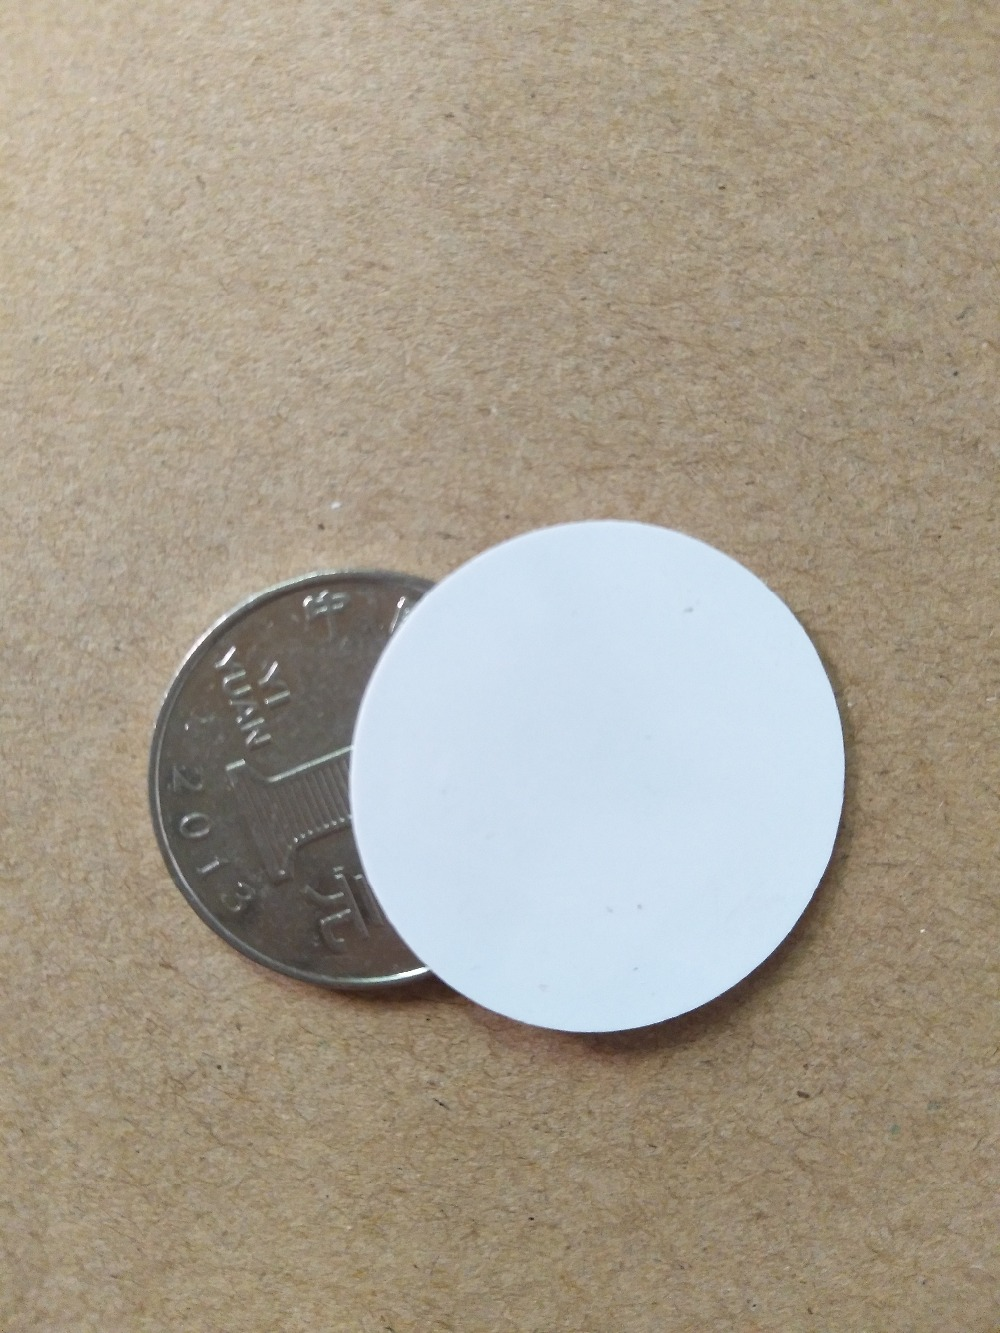 Winfeng 2pcs/lot NFC NTAG213 Tag ISO14443A RFID 13.56mhz HF Blank Plastic 30mm Round RFID Disc Tag Coin Tags For All NFC Phones 4pcs lot nfc tag sticker 13 56mhz iso14443a ntag 213 nfc sticker universal lable rfid tag for all nfc enabled phones dia 30mm